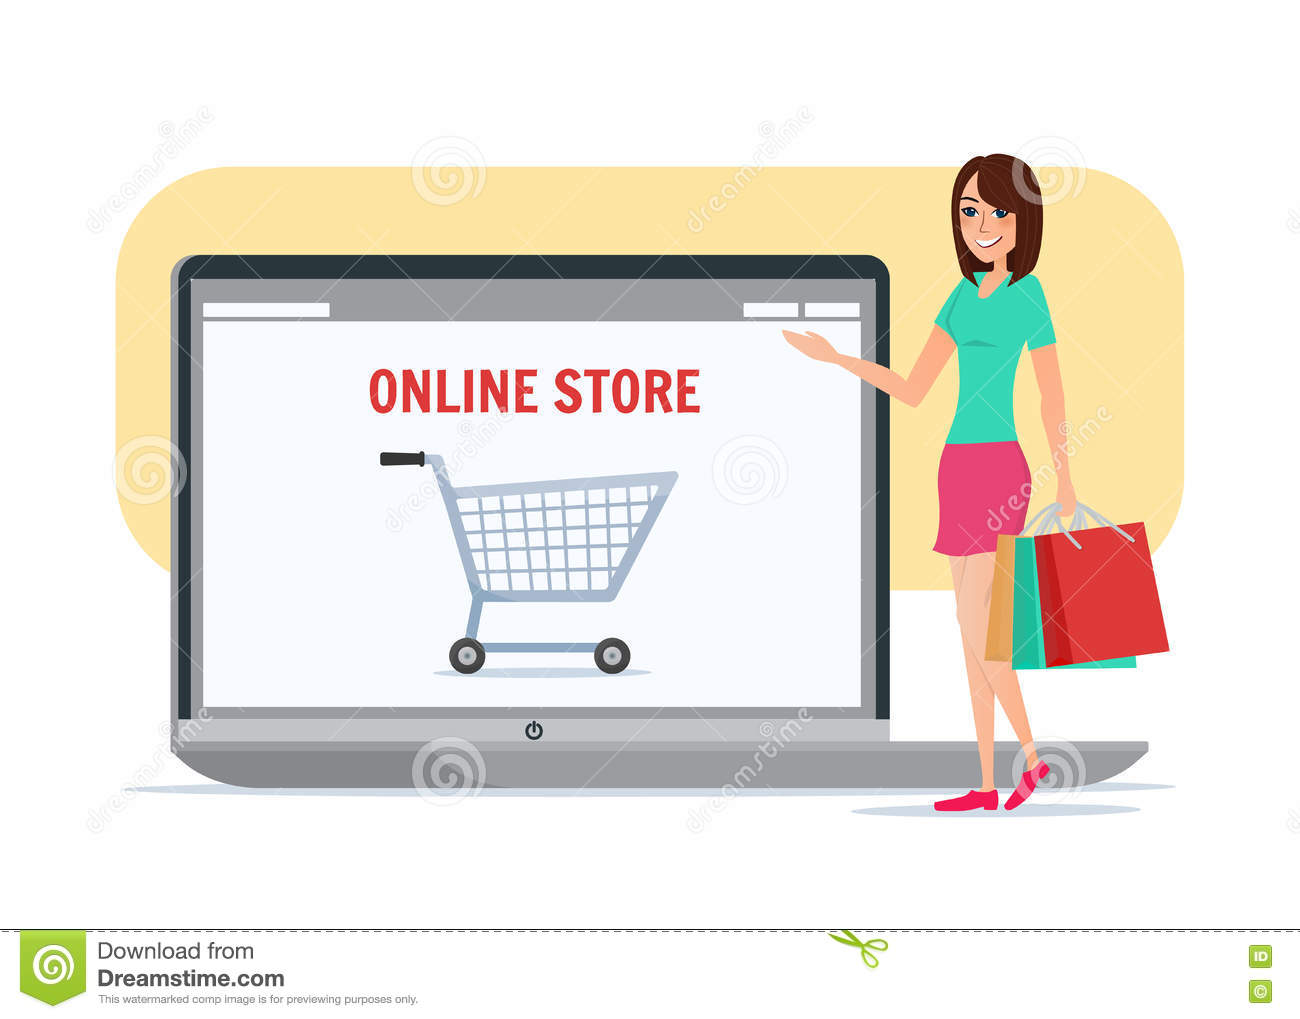 online-shopping-girl-business-cartoon-concept-vector-illustration-isolated-white-background-flat-style-80611502.jpg